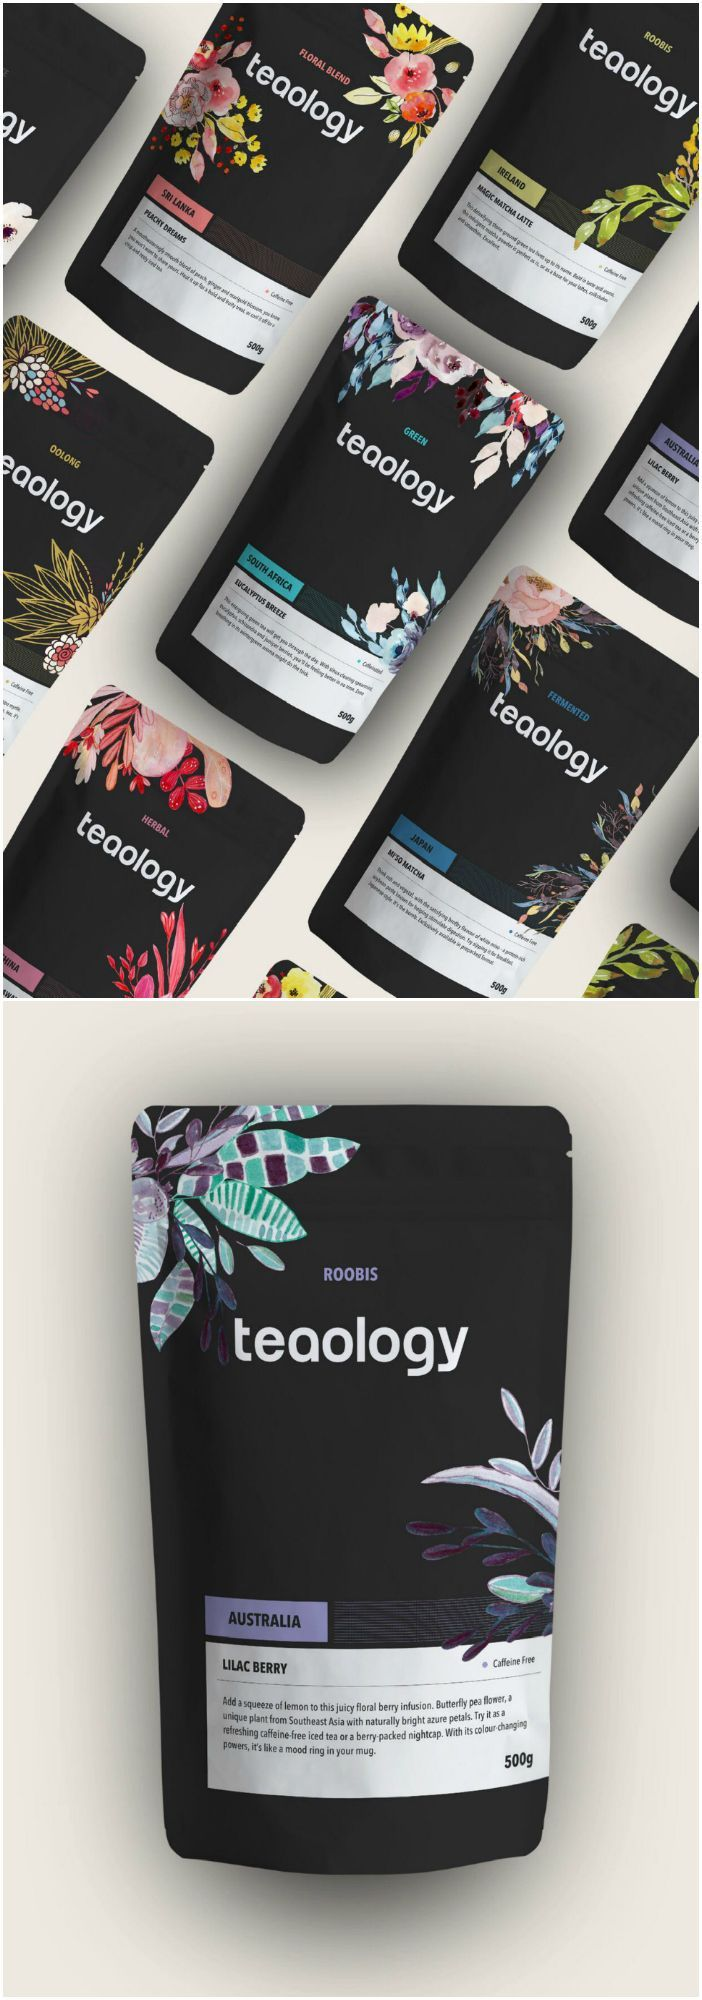 Modern Branding and Design for Teaology - #Branding #Design #Modern #packaging #Teaology #branddresses